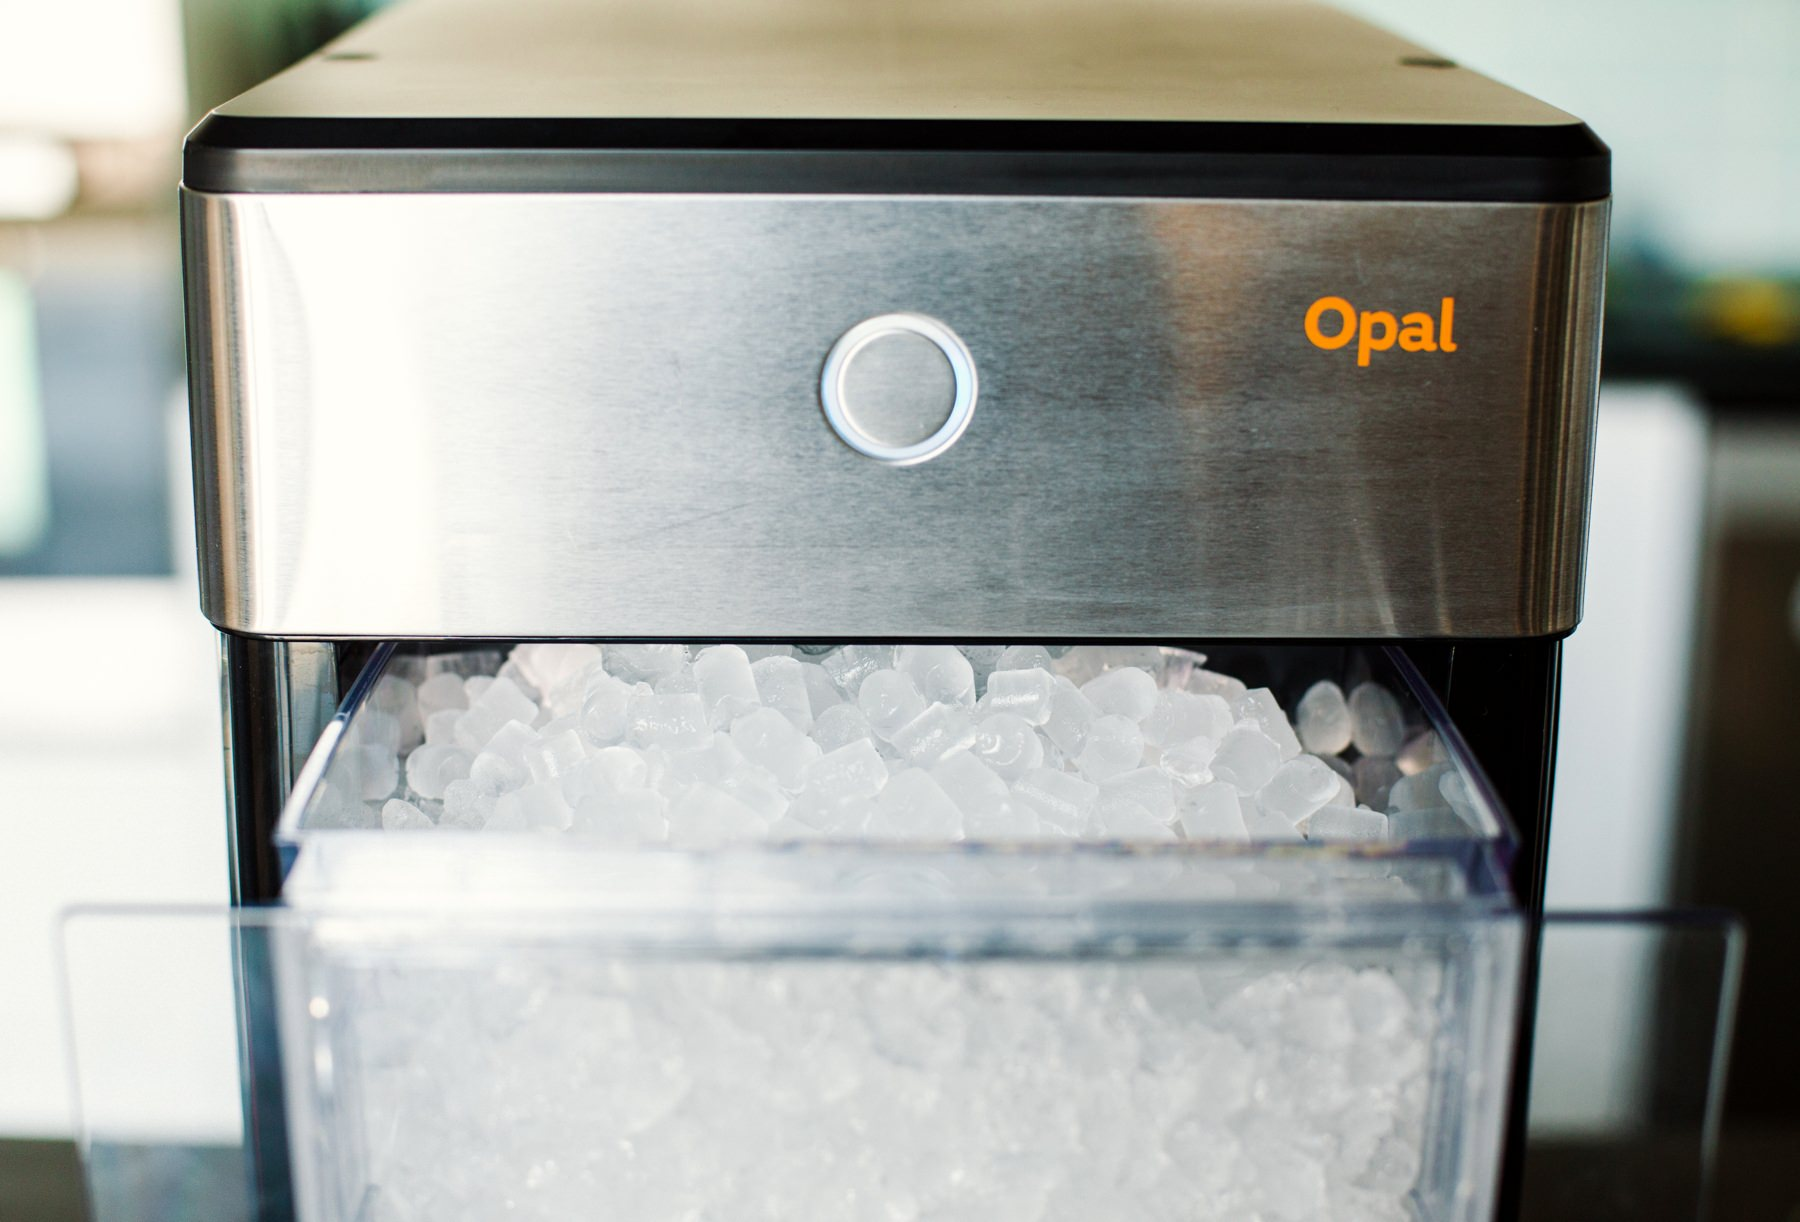 FirstBuild Opal home pebble ice machine